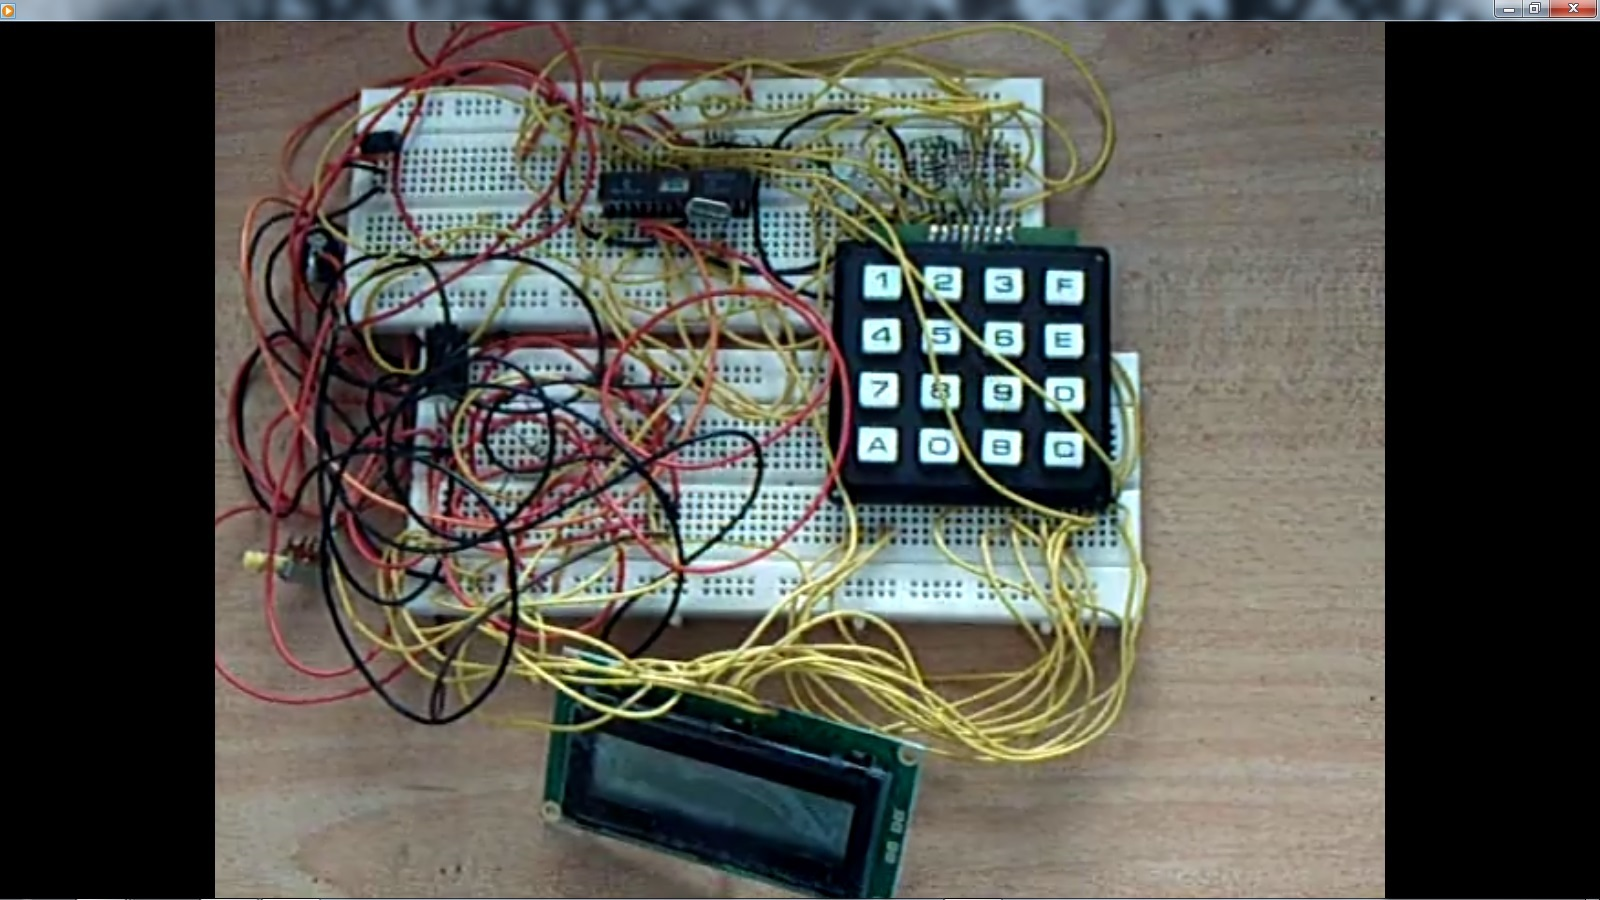 Prof Dr Chan Junt Hoong FIET FIEEE BEng built the Computer Control System in 2003 as below in the first prototypes as displayed below with the 40 pin version in the later years . In the pictures and videos below, the prototypes are pictures connected together with the Microchip PIC 16C63A 28-pin version and Microchip PIC 16F1973A 40-pin version. The Microchip PIC 16F1973A with it's large memory was utilized as a text storage input and output, as a data storage for data in and output as data out and repeatable. Written and created by Prof Dr Chan Junt Hoong FIET FIEEE BEng CEng.